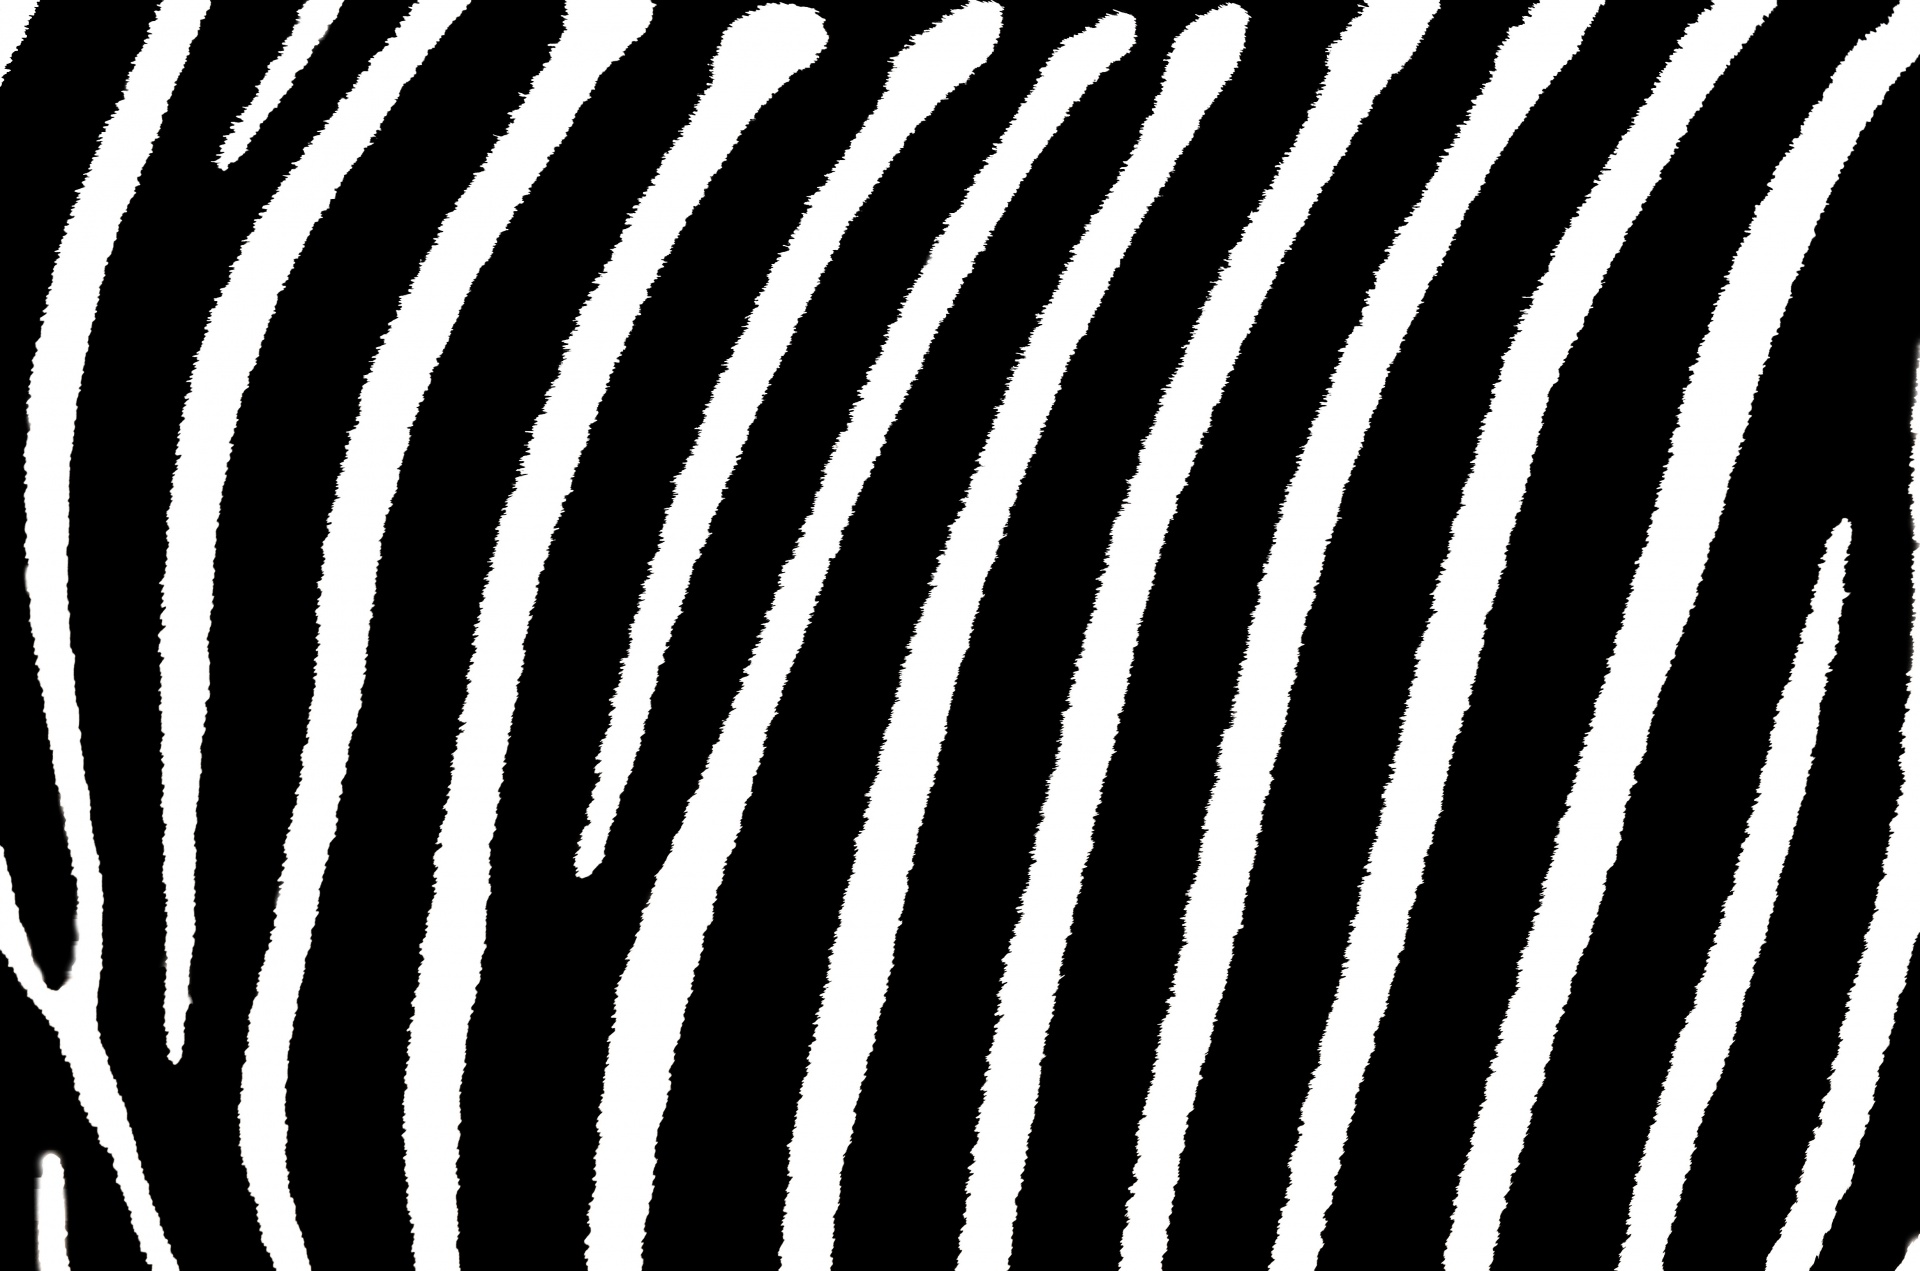 striped zebra stripes background